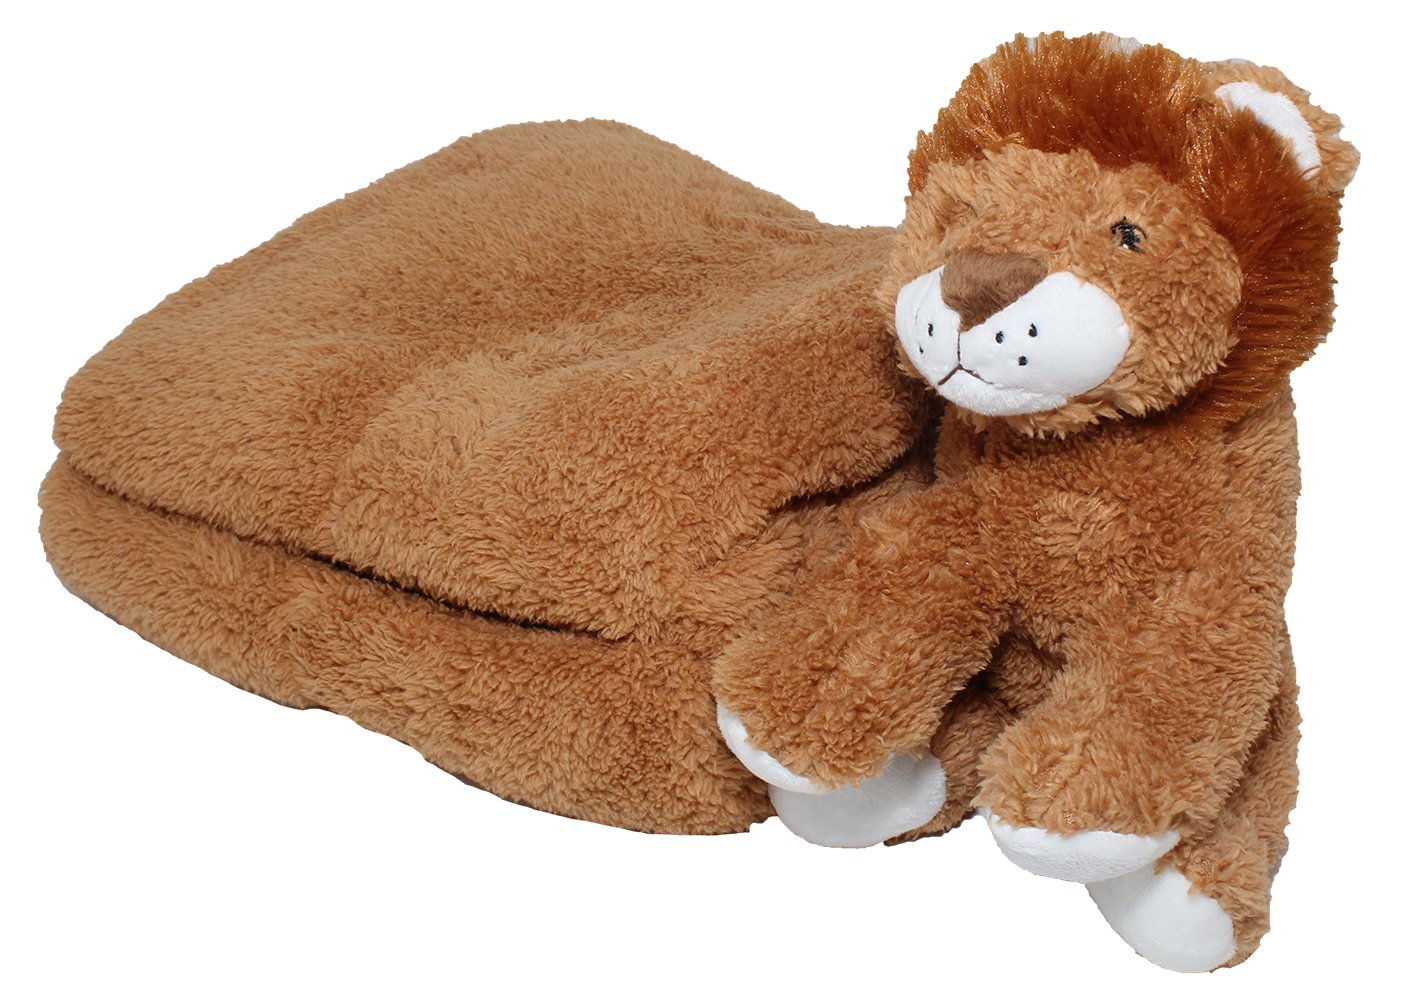 Silver One Sherpa Plush Stuffed Animal and Throw Blanket 2 Peice Gift Set for Kids/Children | 50'' x 60'' Soft Plush Throw | Get Well Gifts Tan Lion by SILVER ONE (Image #3)